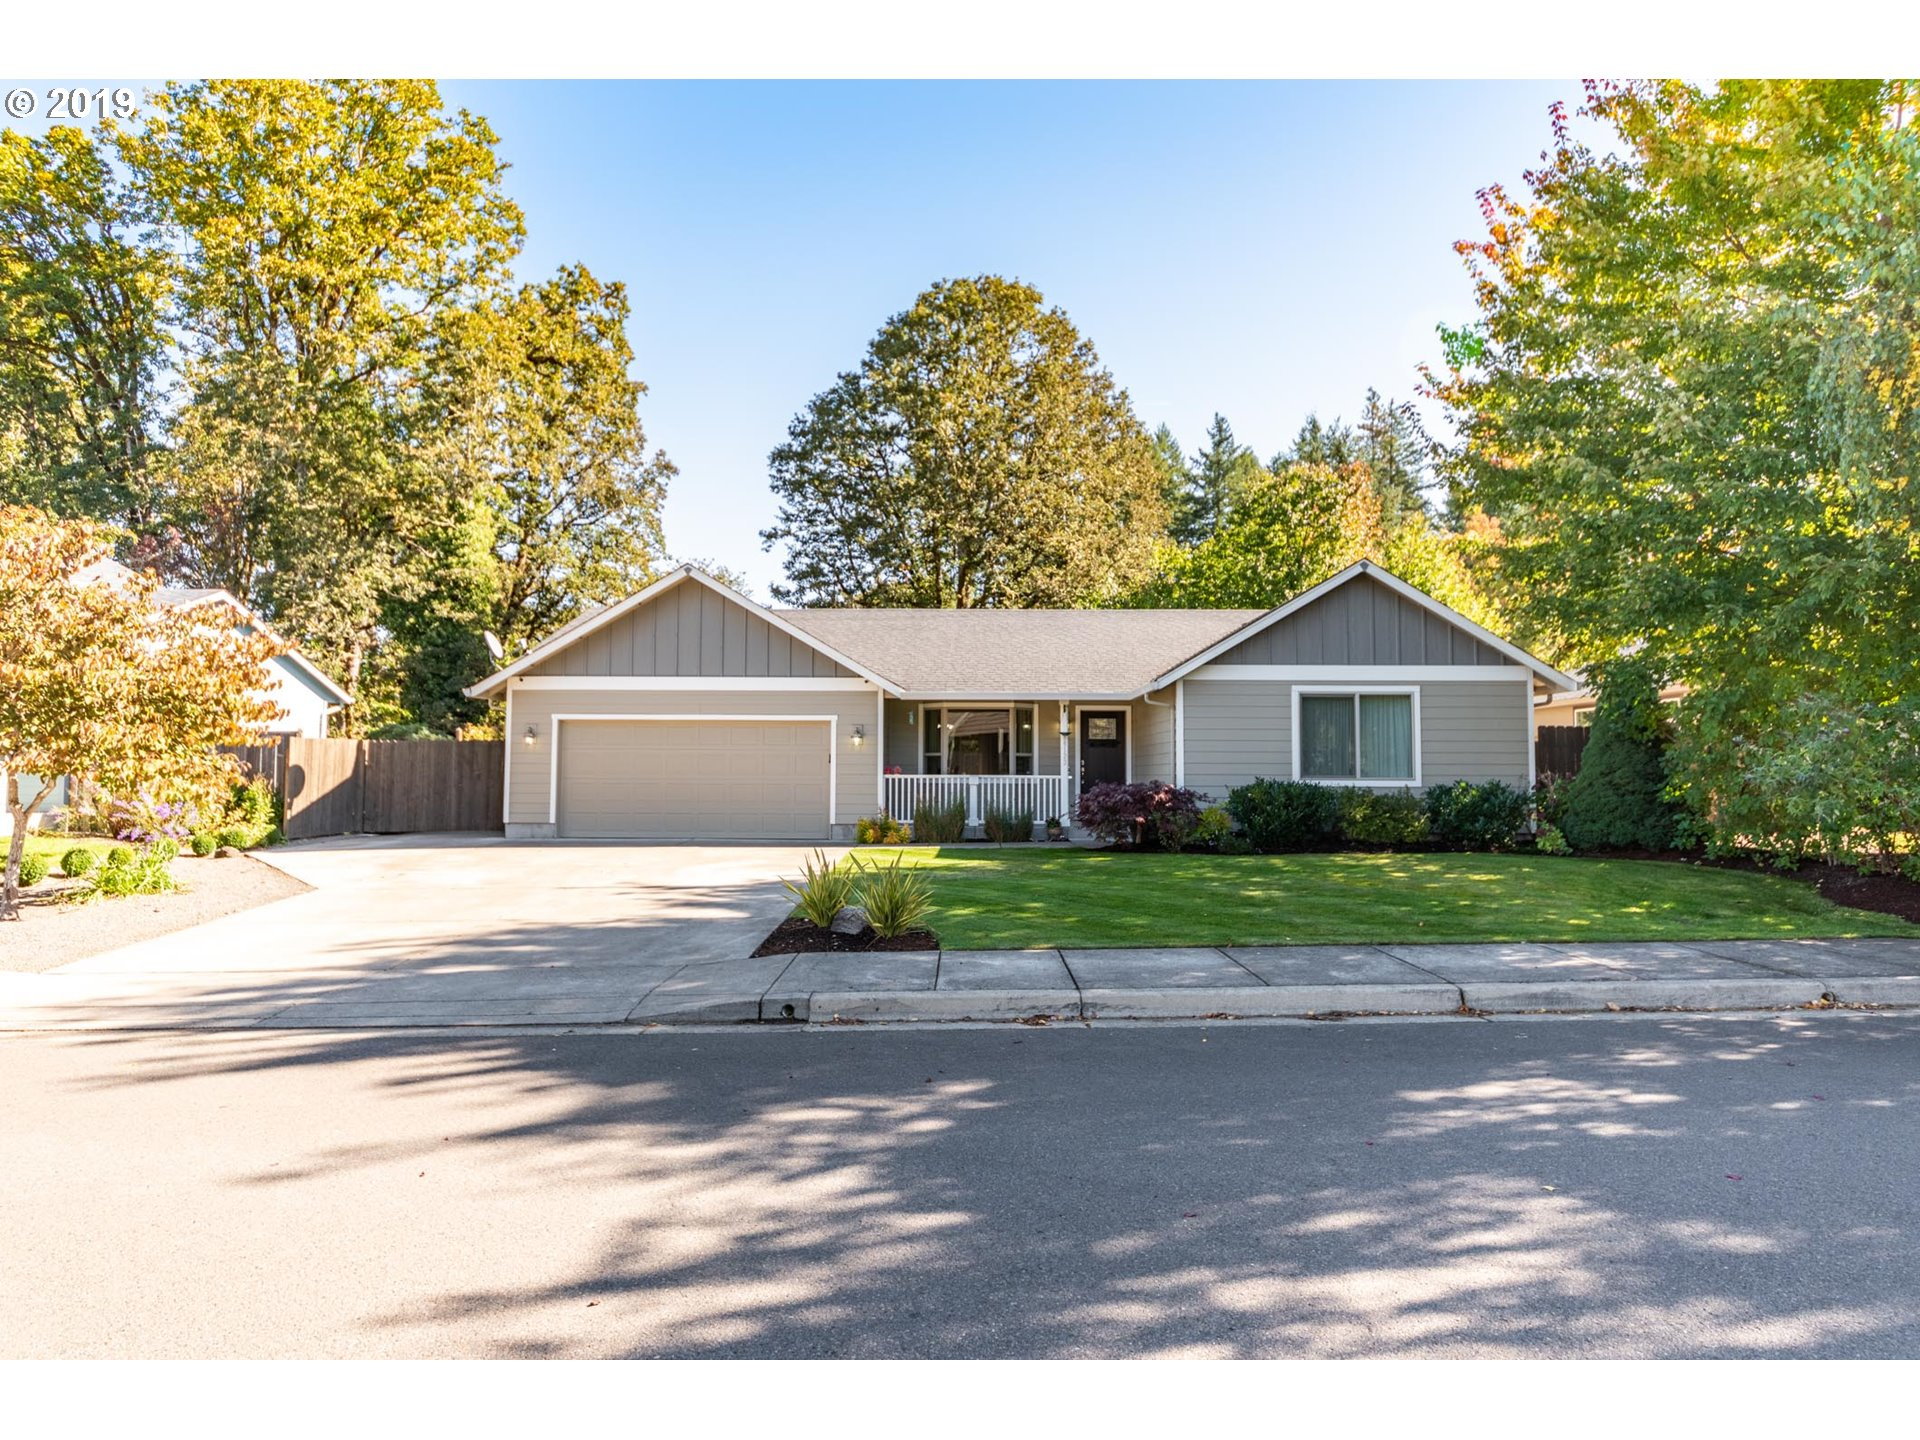 88123 9TH ST Eugene Home Listings - Galand Haas Real Estate